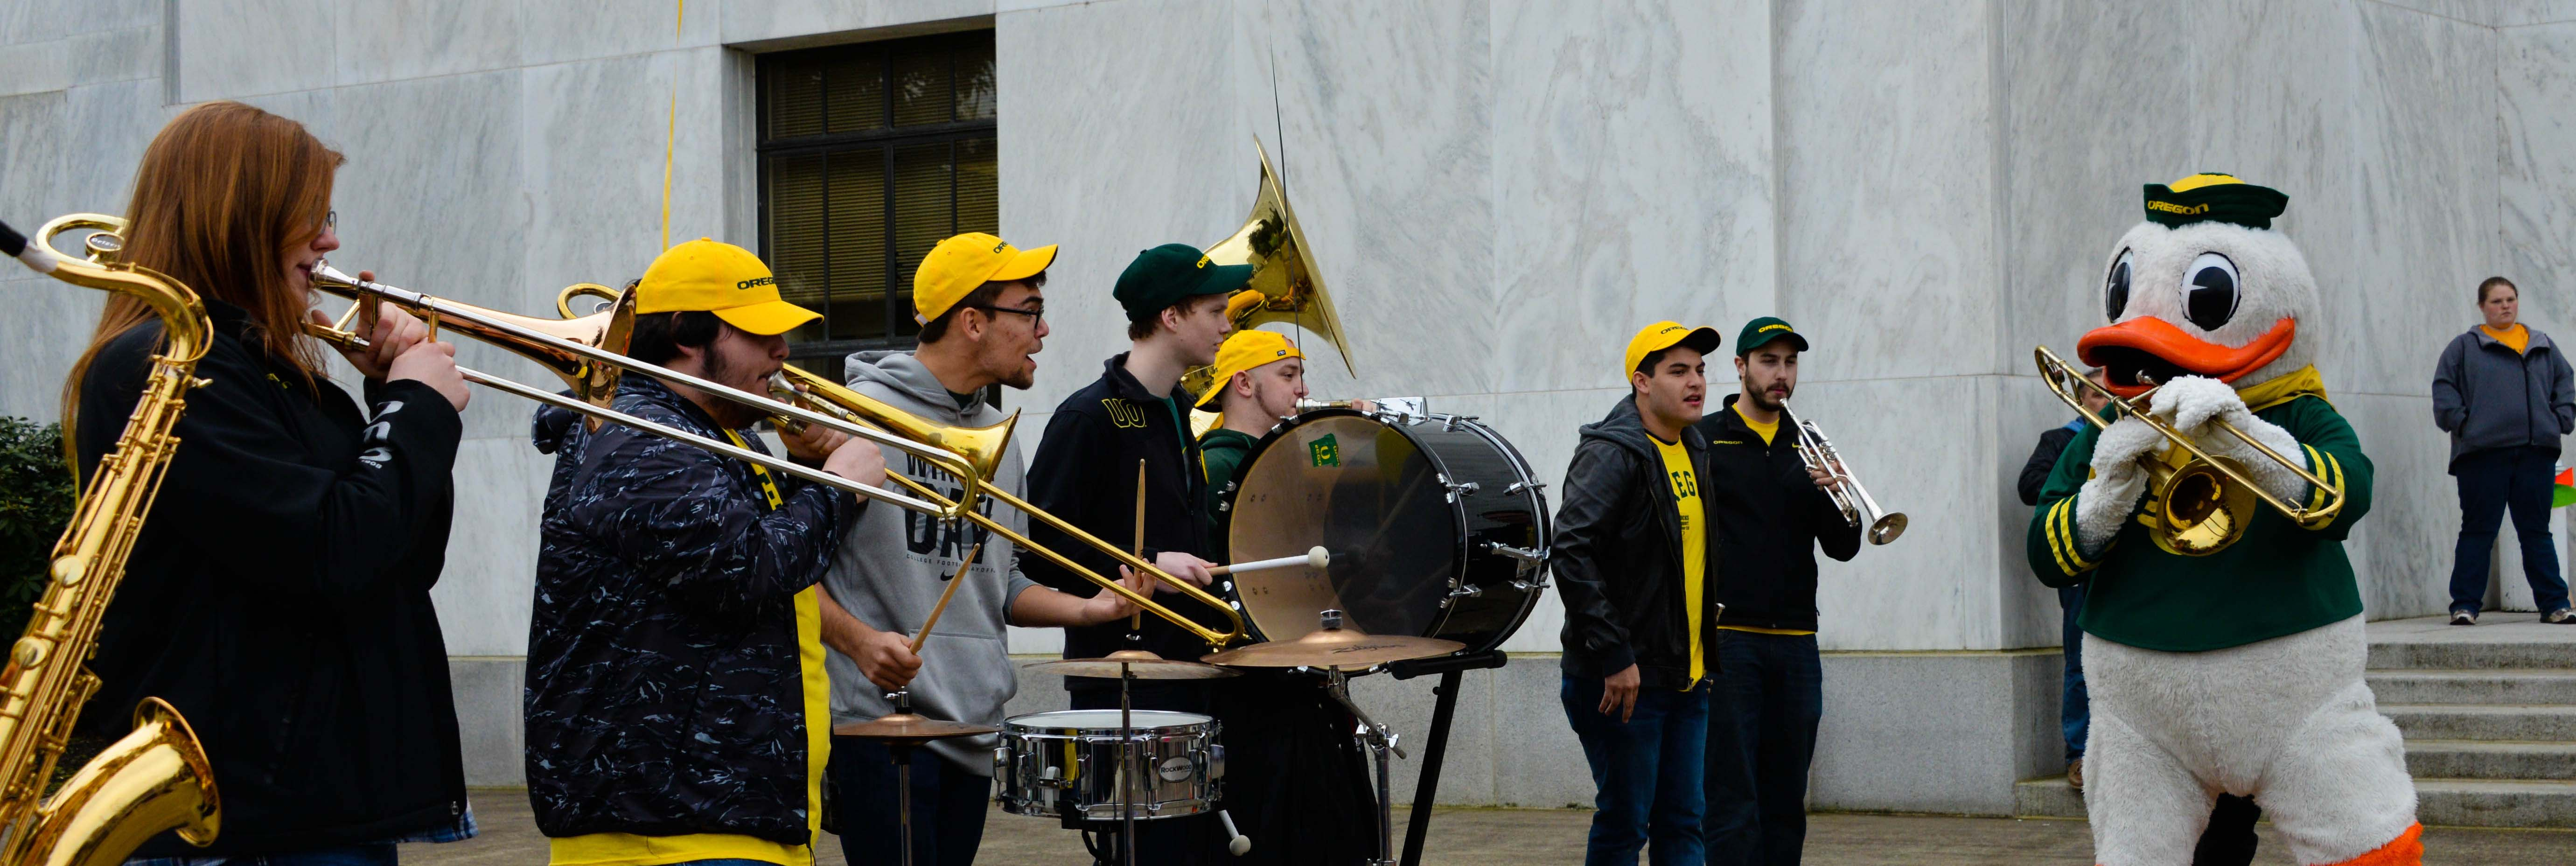 The University of Oregon Band and their mascot play for the nearly 500 students whom ascended on the State Capitol Thursday. For the Student led rally to freeze tuition and maintain state educational funding for the next two years.